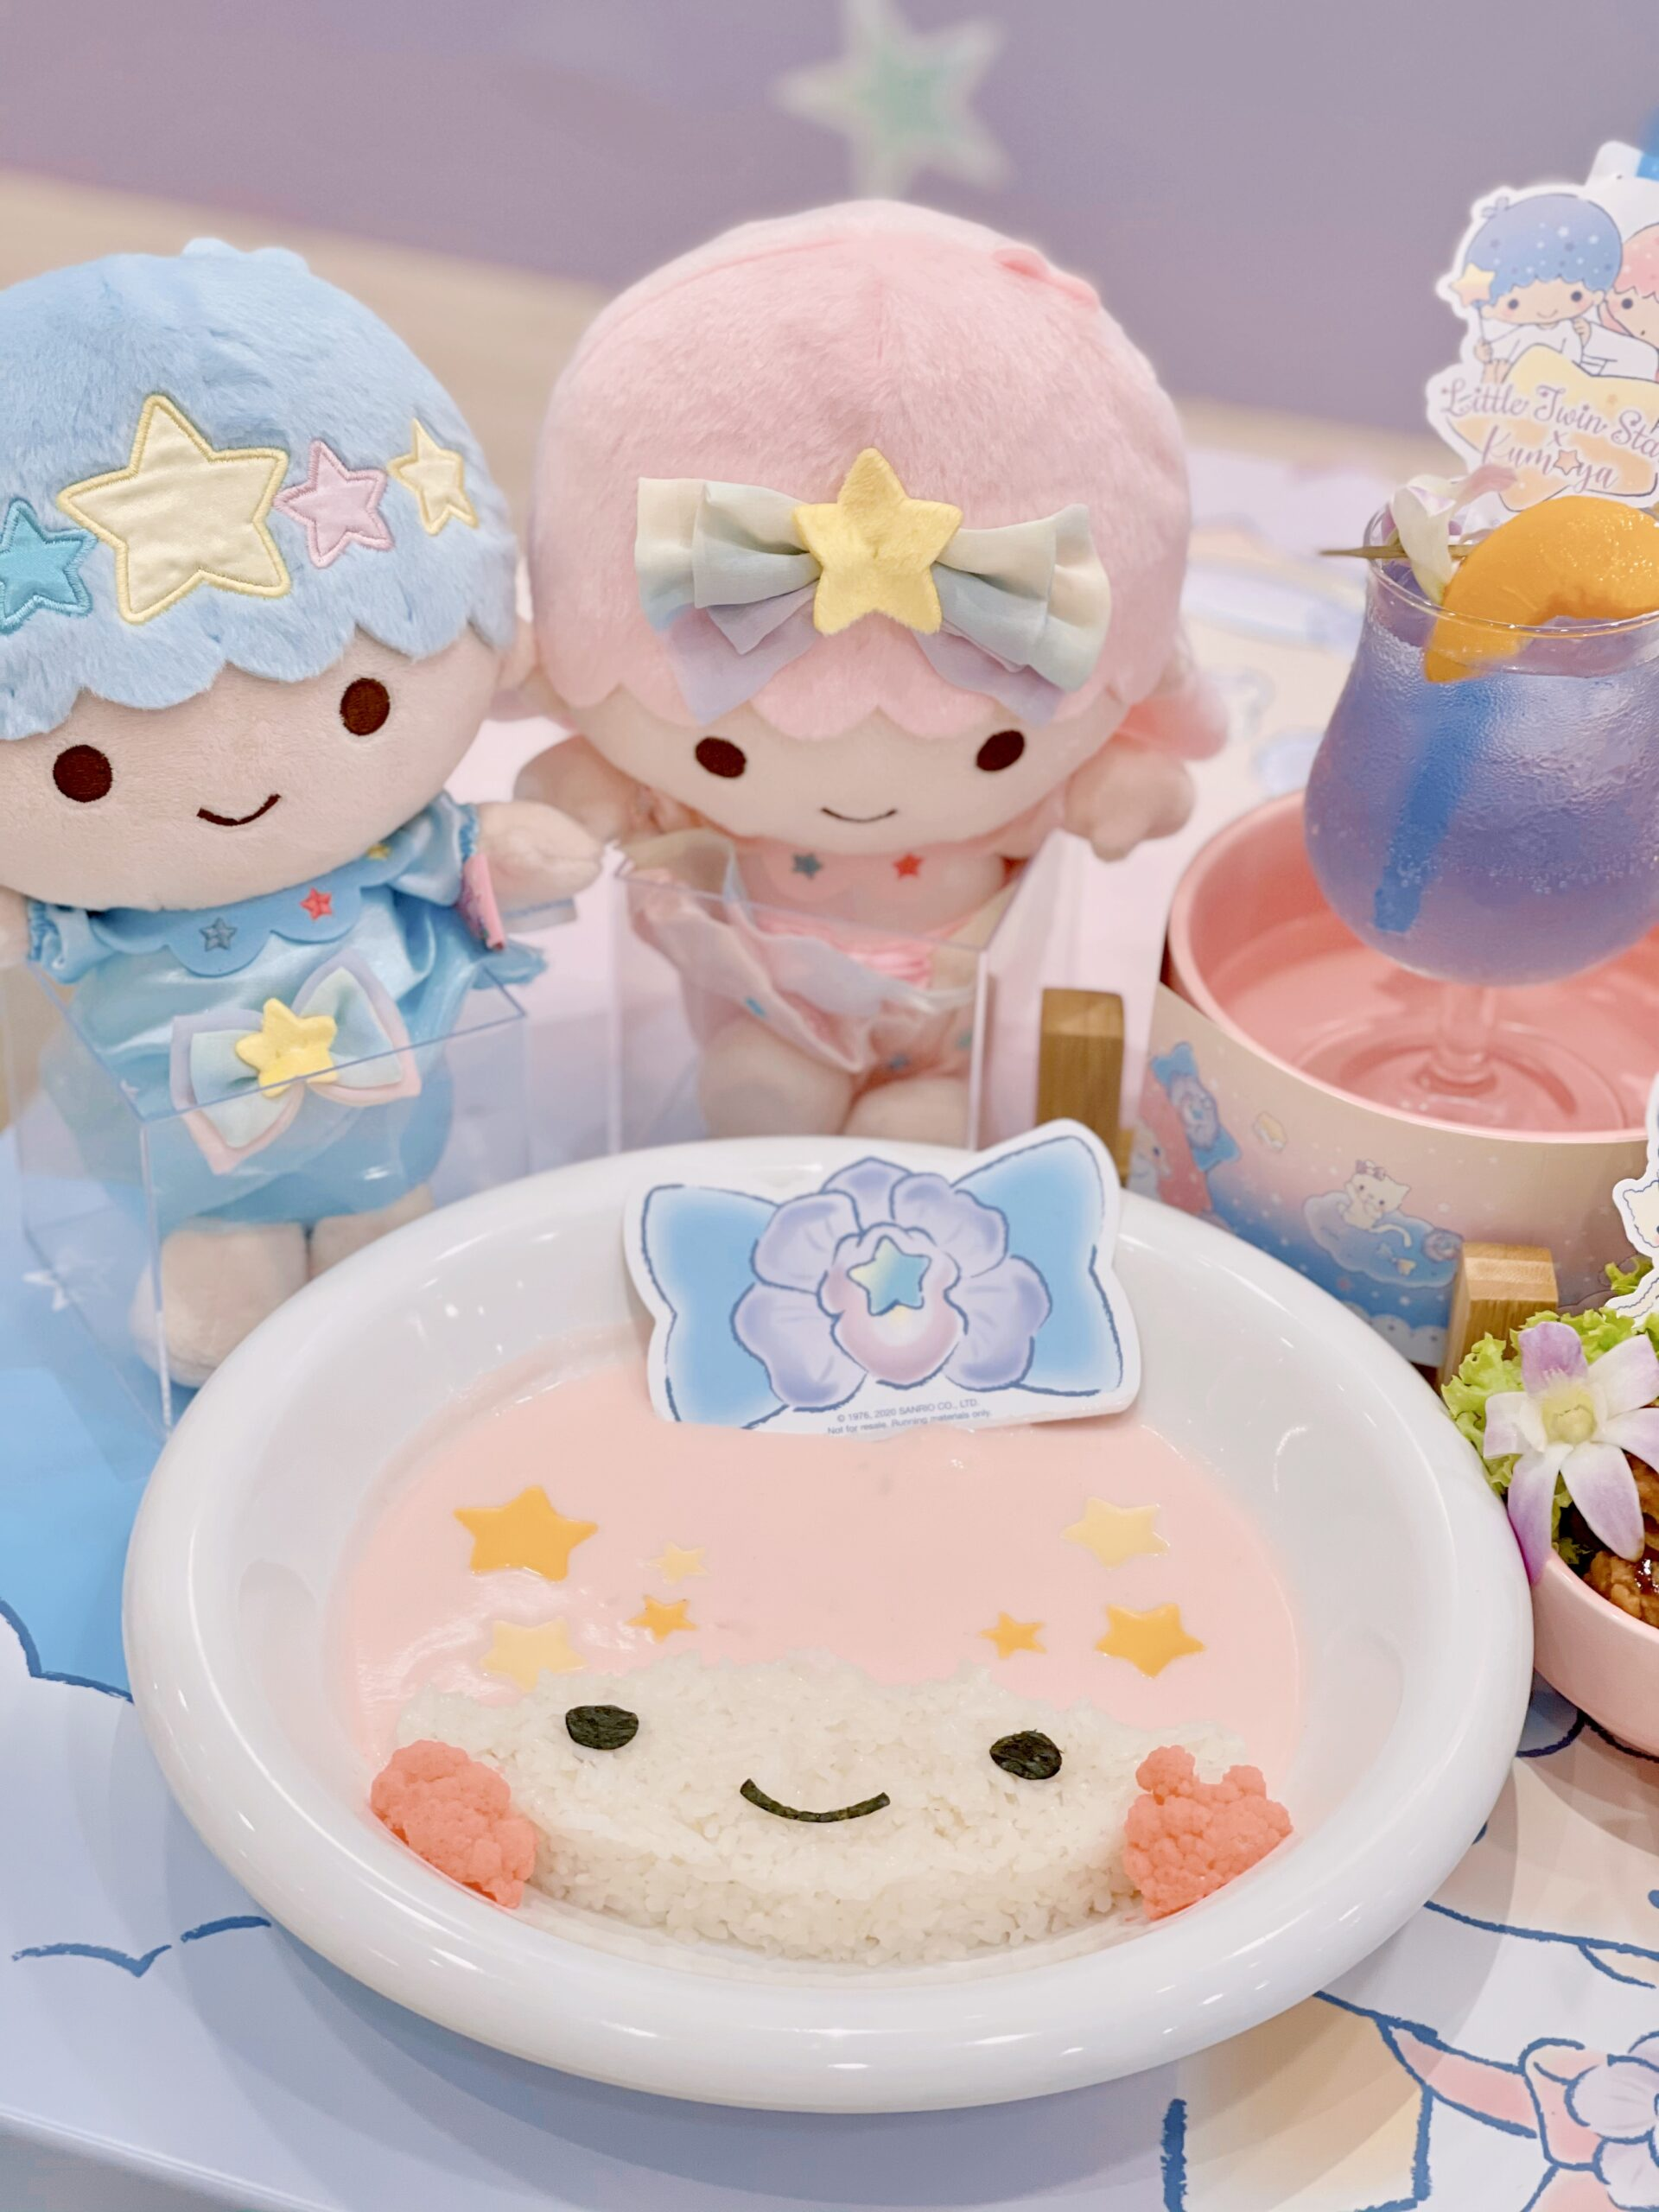 Kumoya Little Twins Star SG instagrammable cafe